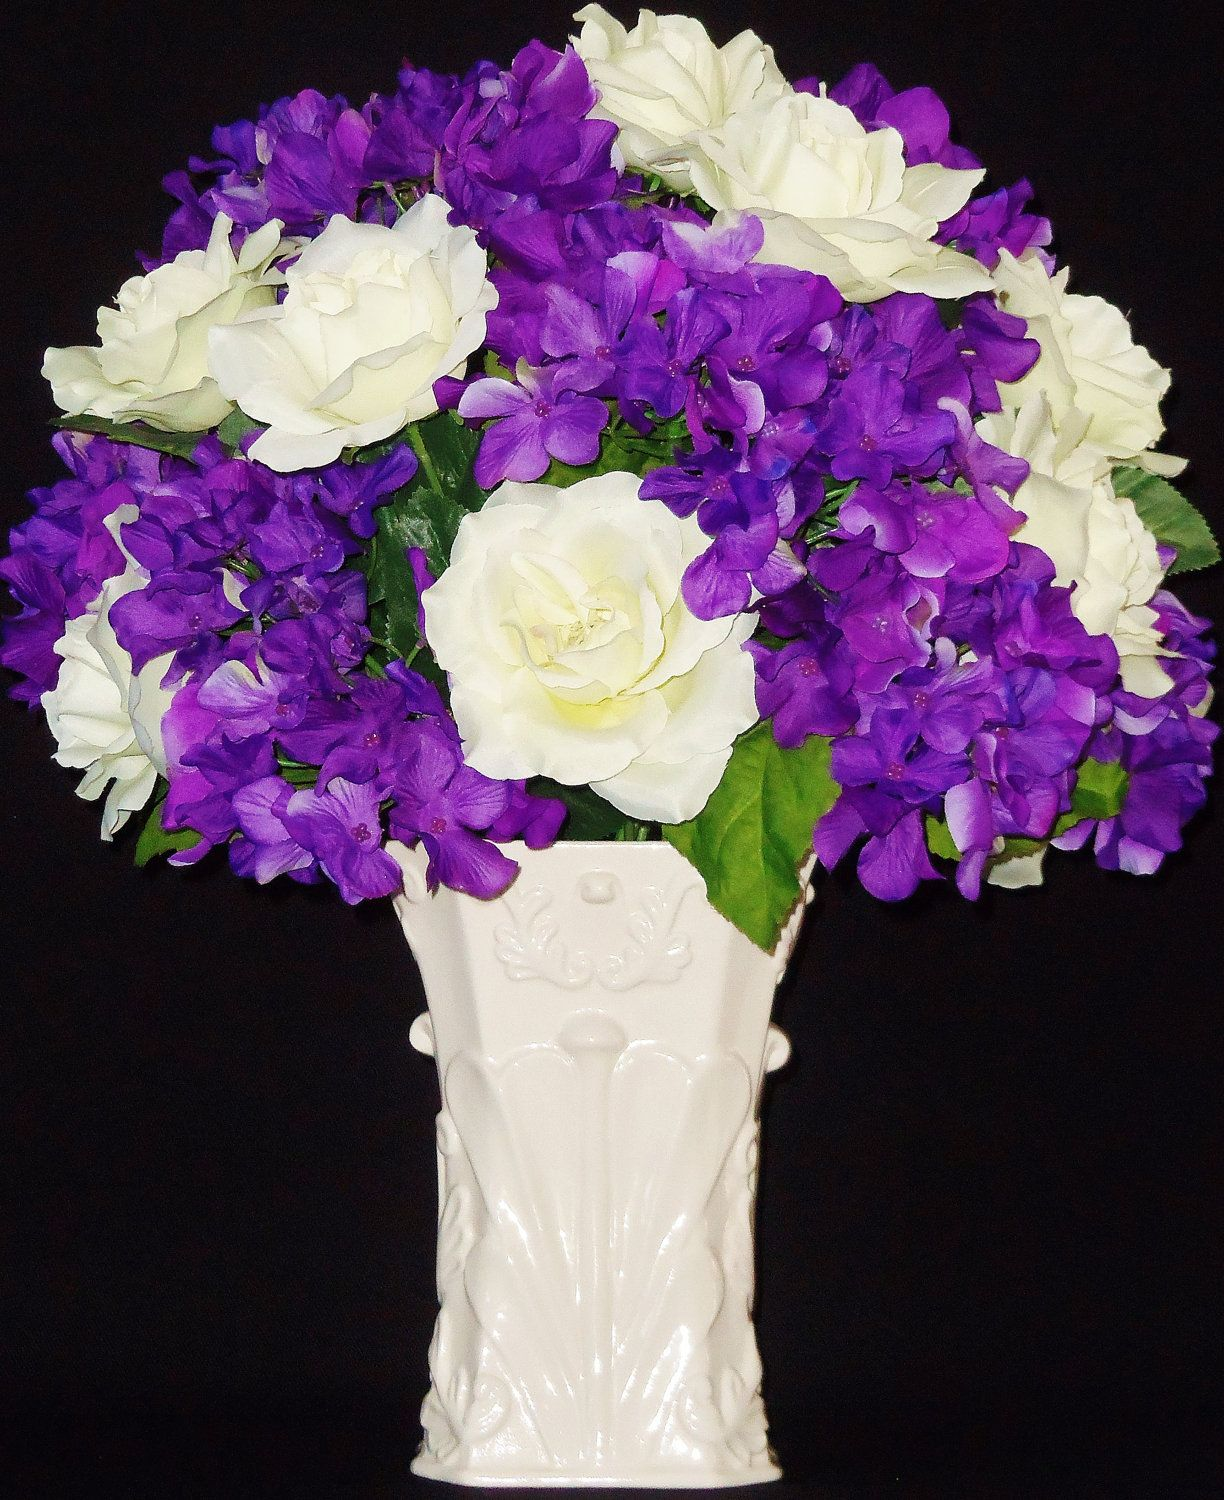 Purple rose flowers request a custom order and have something made artificial flower arrangement white roses purple hydrangea silk flowers silk floral arrangement spring silk flower arrangement via etsy mightylinksfo